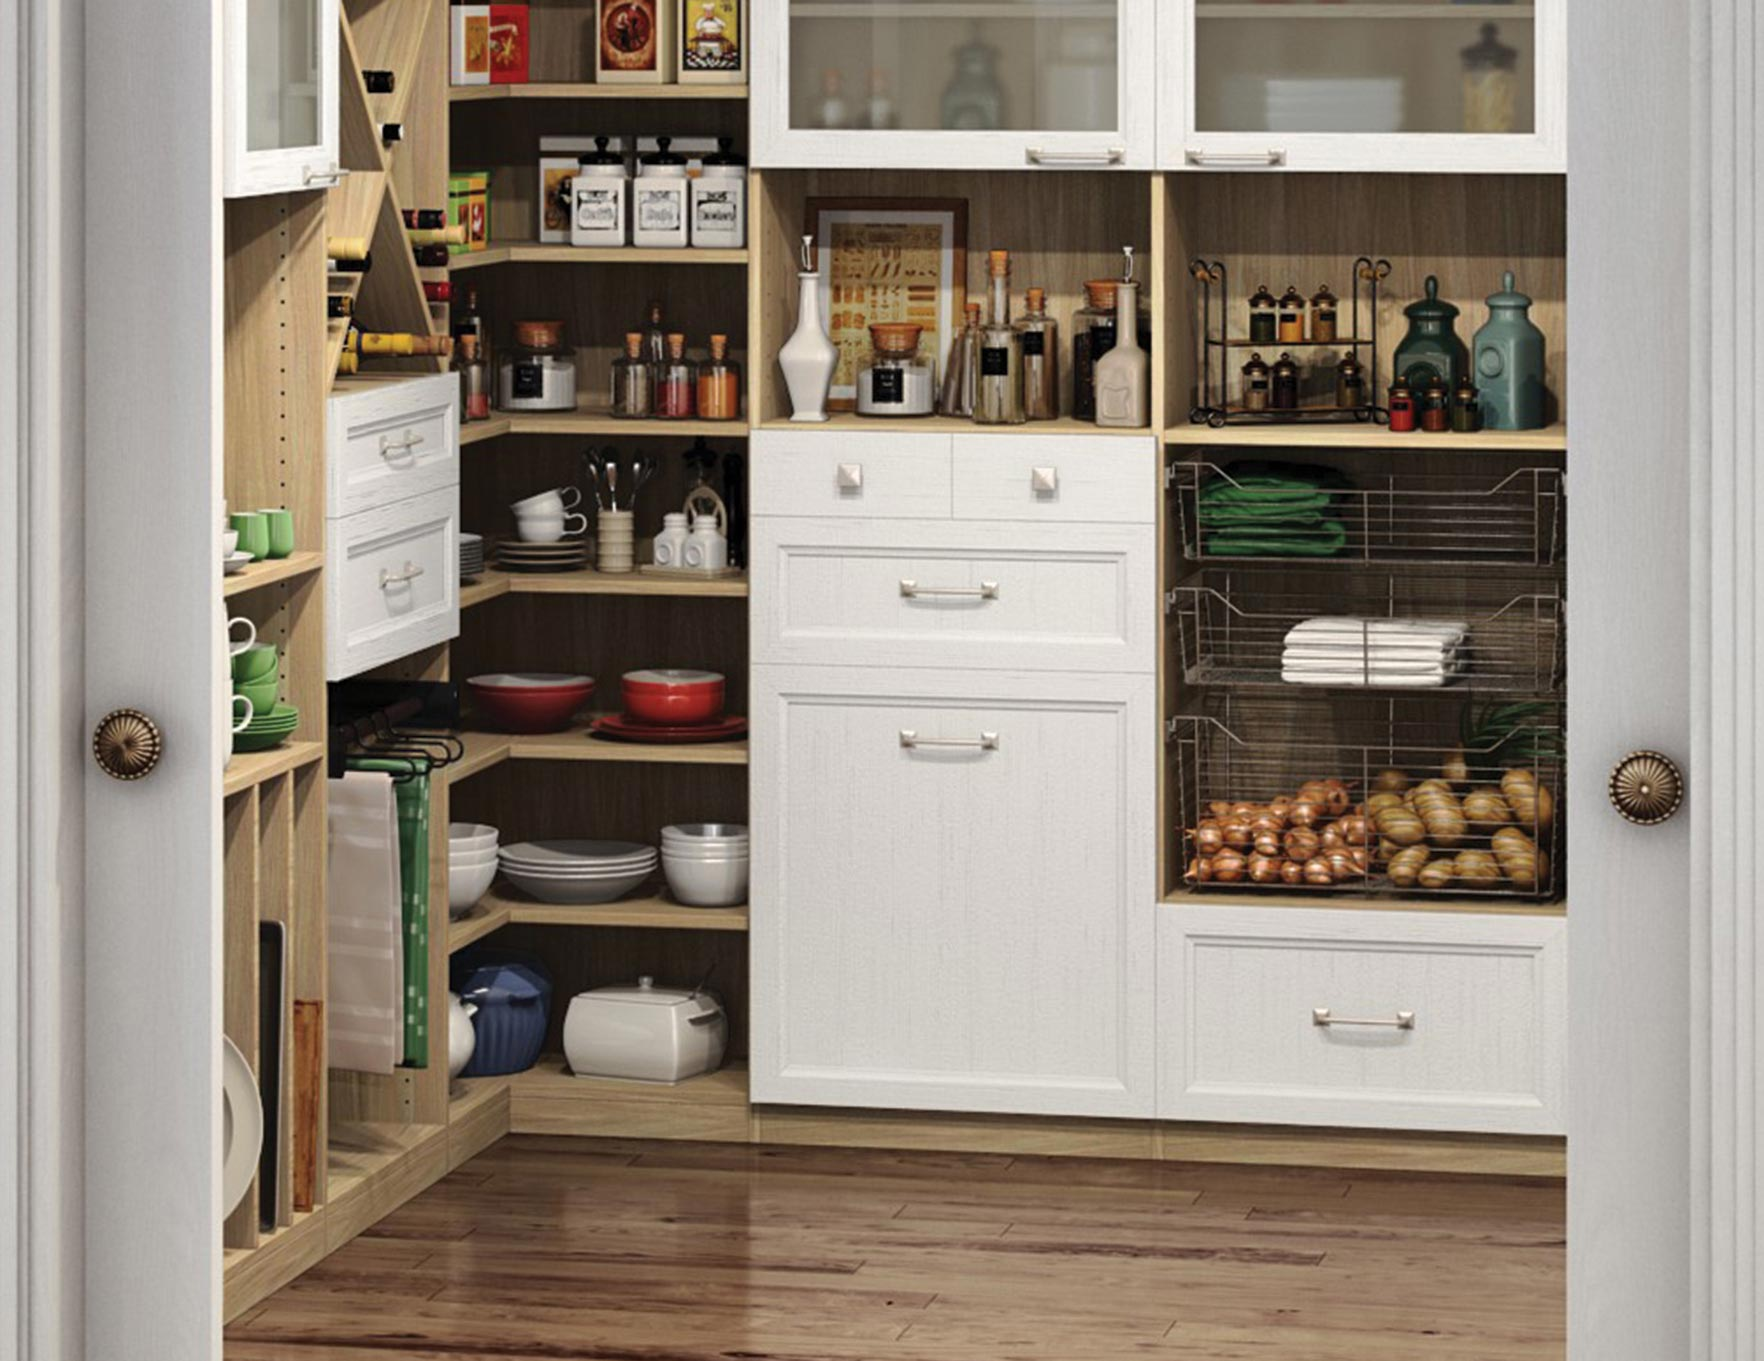 California Closets Detroit - Pantry Accessories Keep You Organized